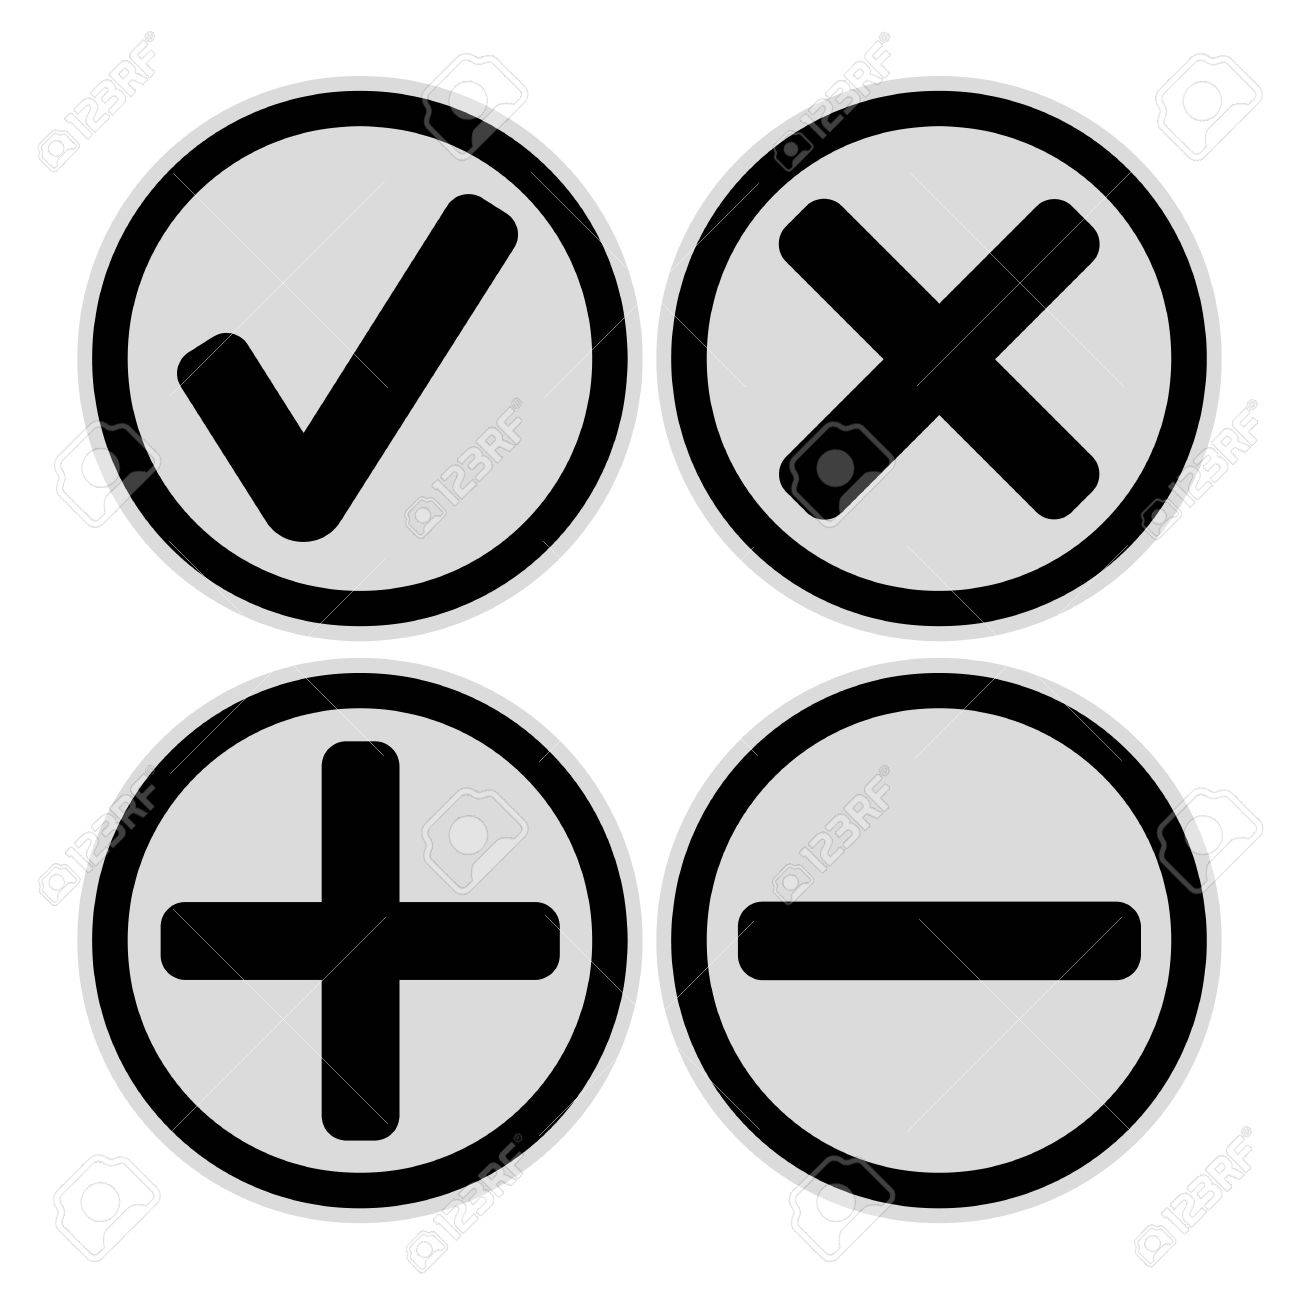 Add, delete, cross & check mark icons - can be used as website,